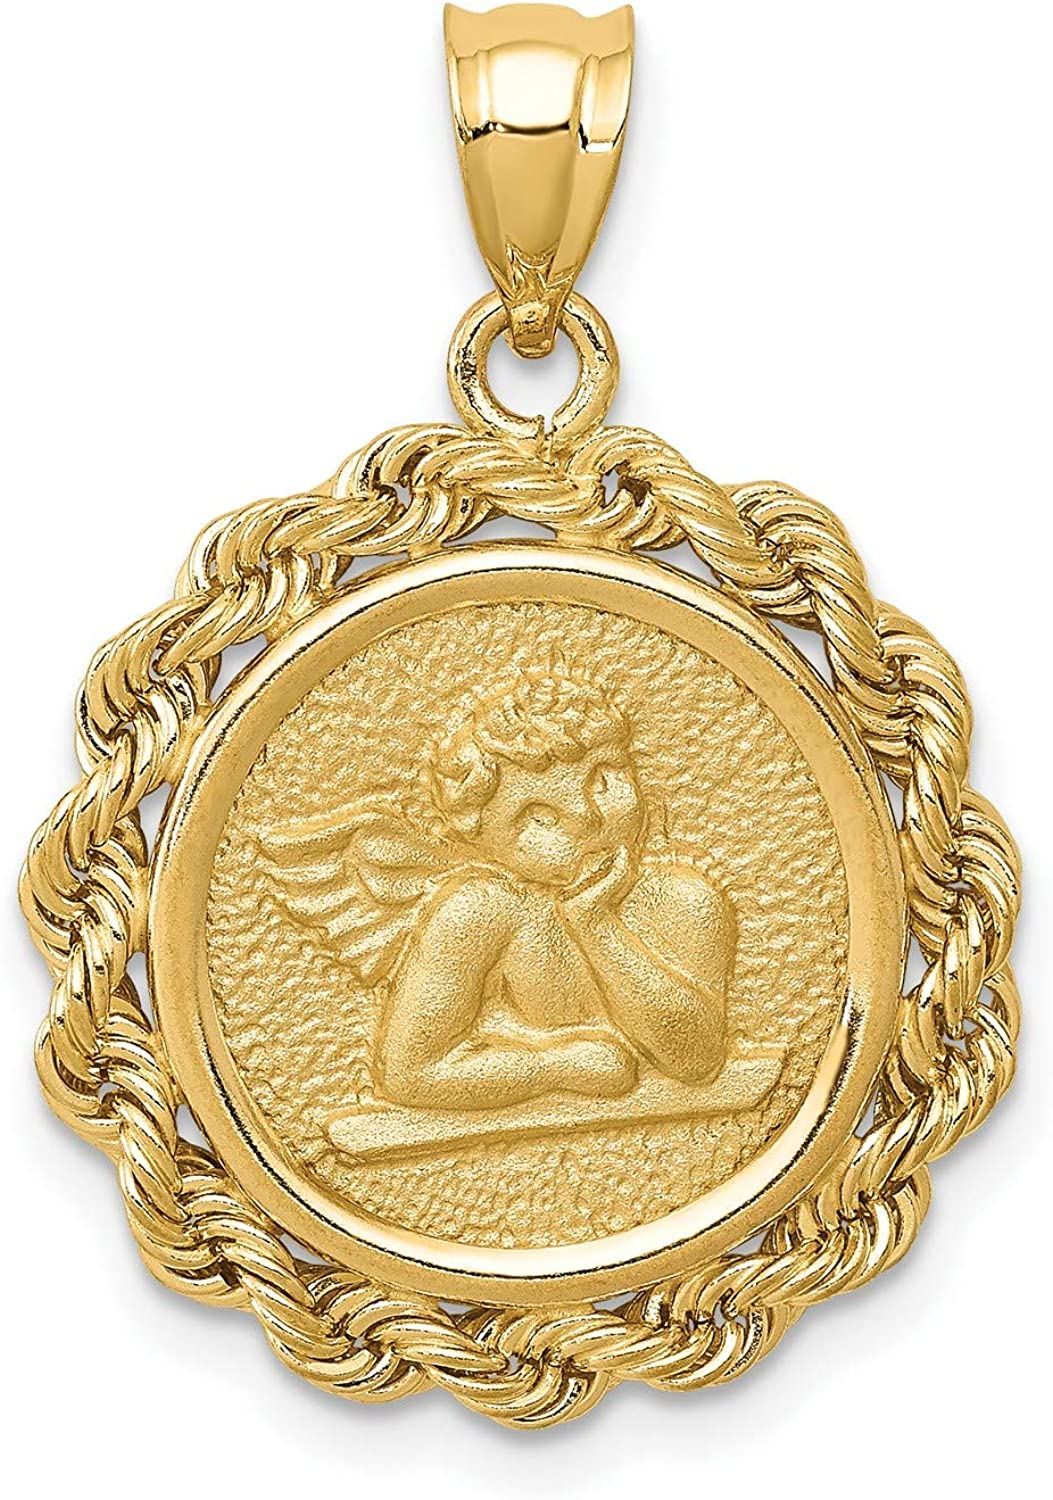 14k Yellow Gold Cherub Angel with Hand on Chin Pendant with Rope Border 25 mm x 18 mm